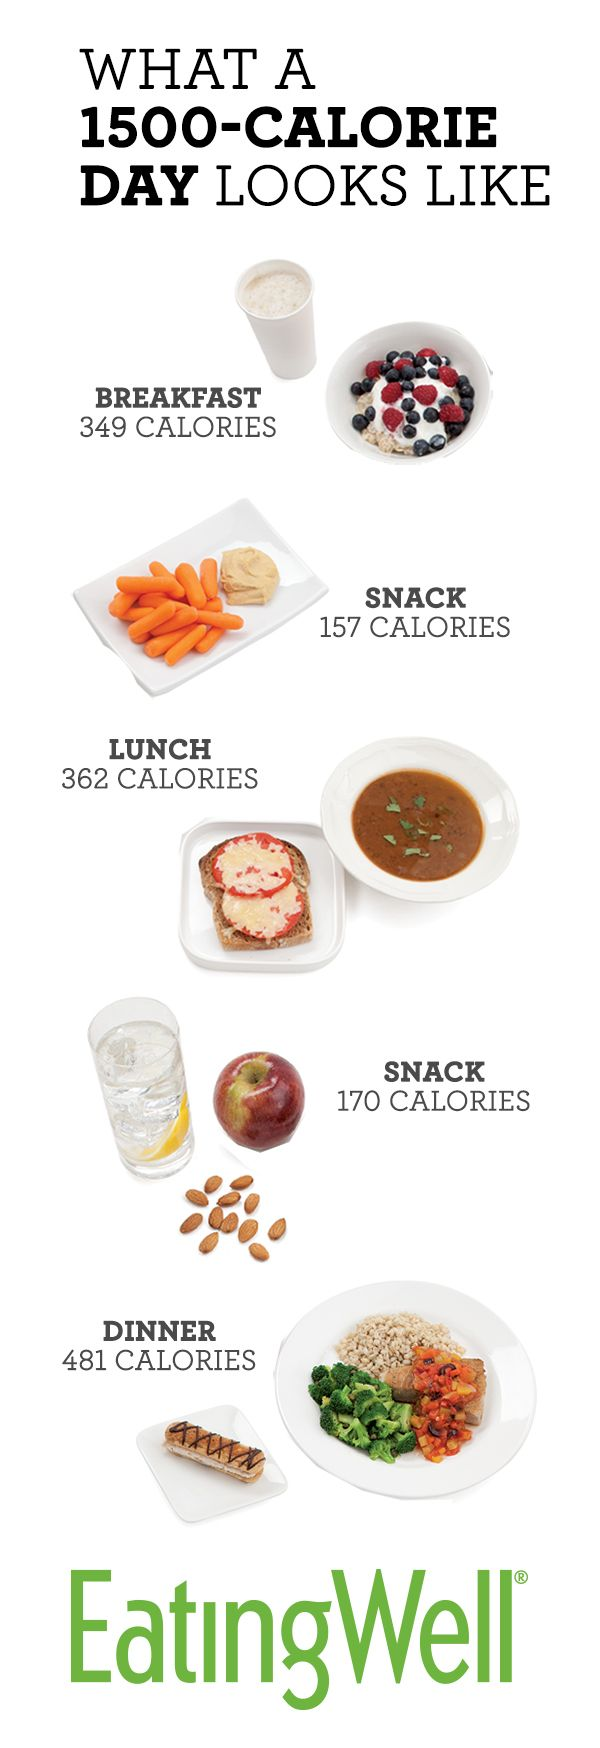 Most people will lose weight on a daily diet of 1,500 calories, which is the total calorie count for all the food pictured here. +++ Visit our website and get your free recipes now!